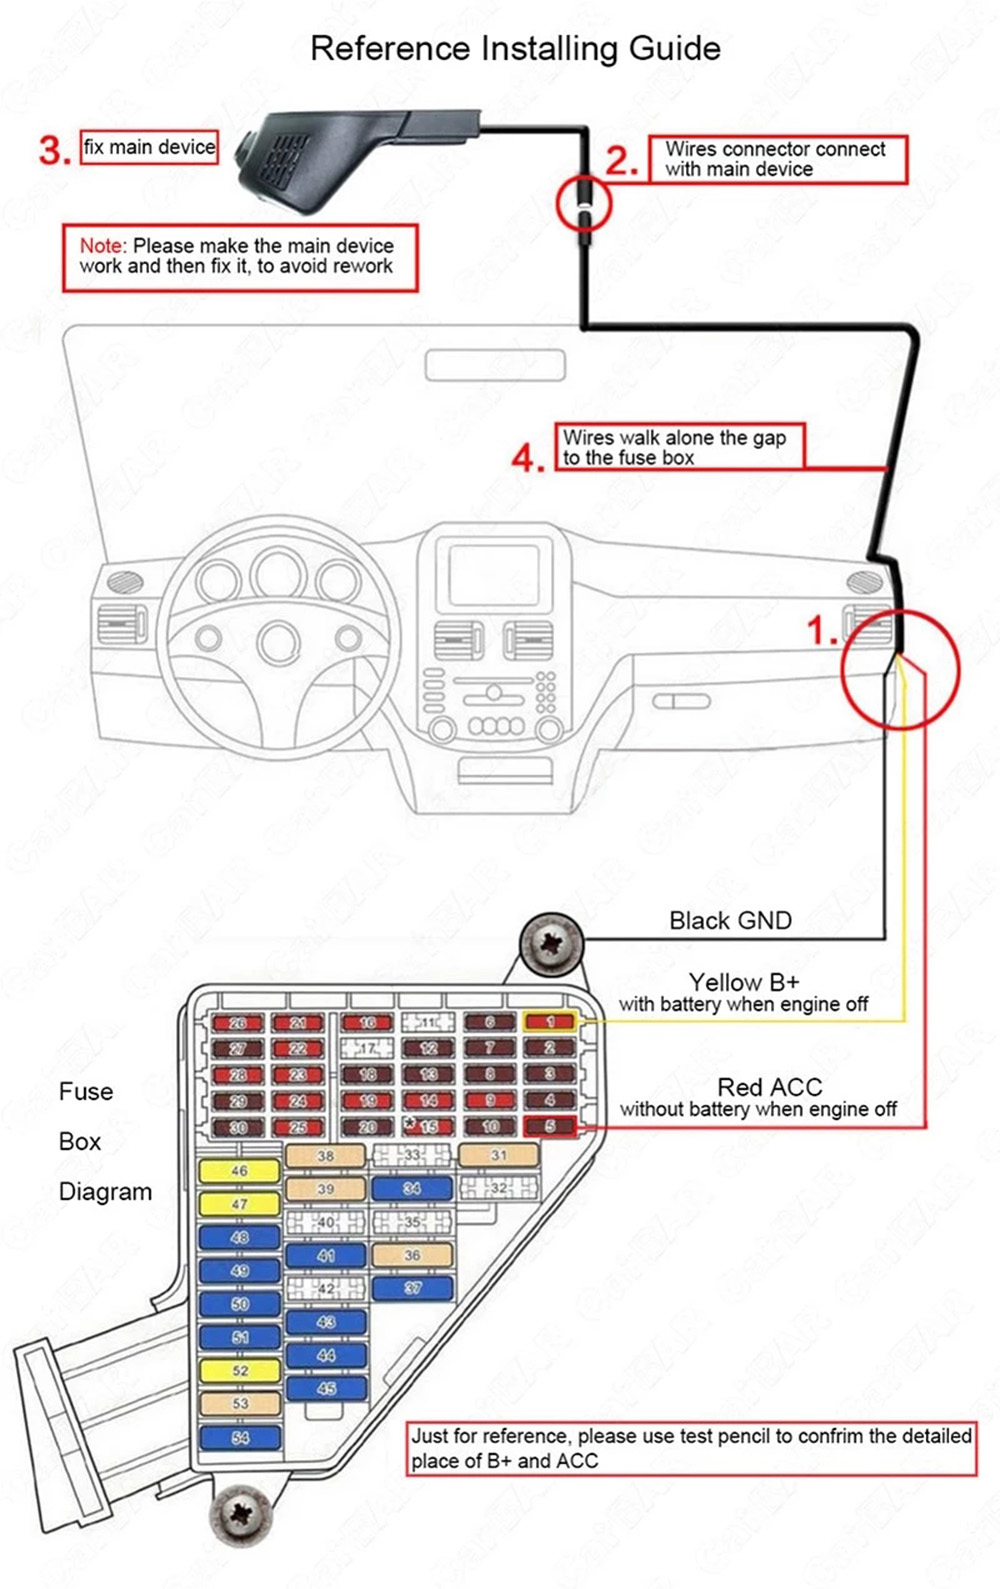 Reference Installation Guide